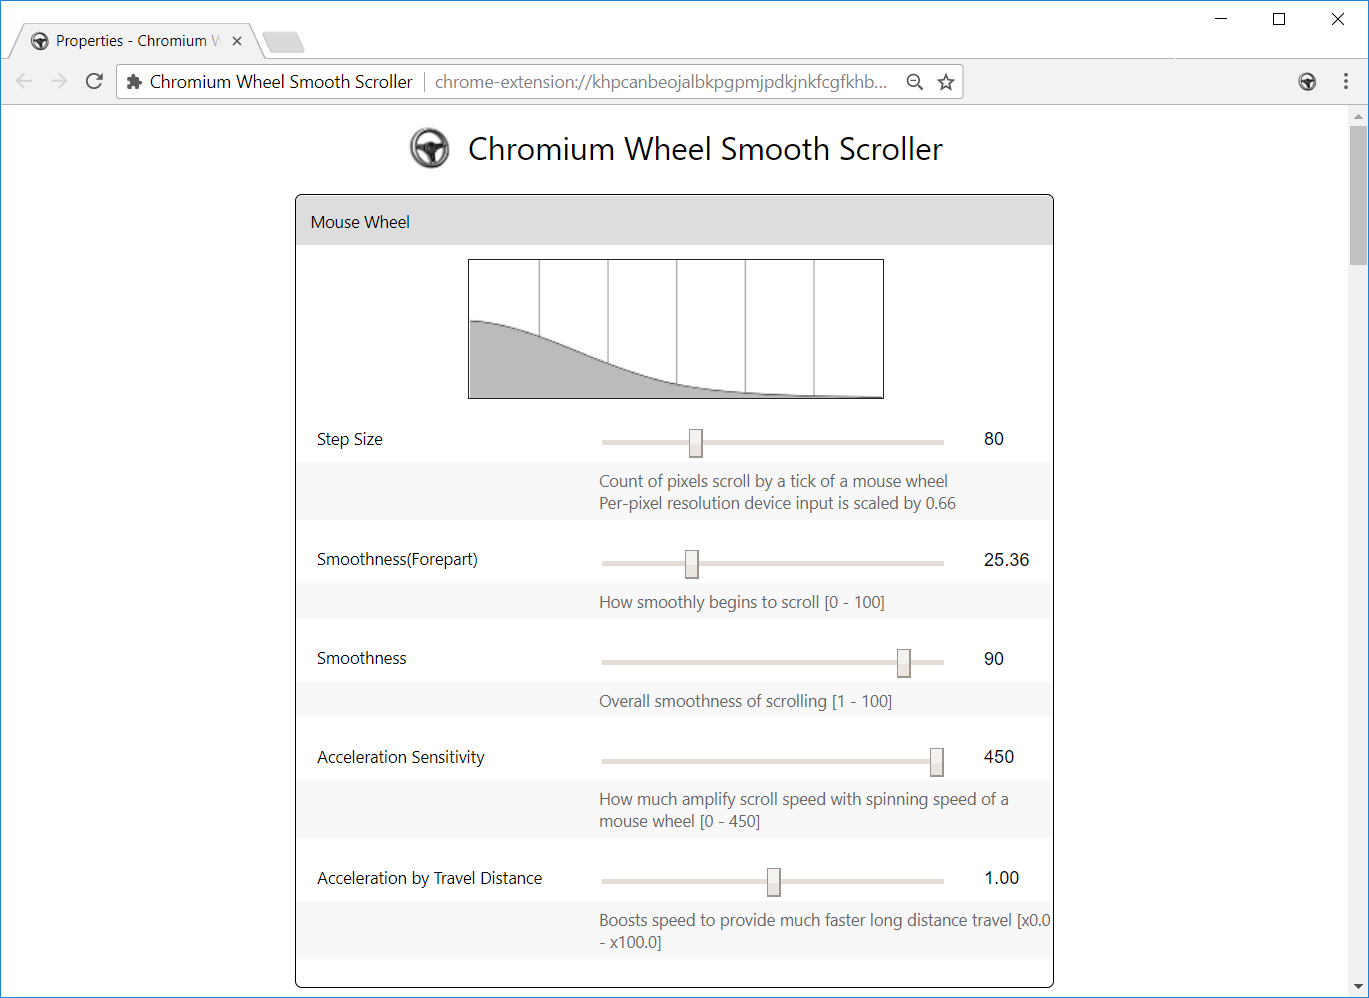 Chromium Wheel Smooth Scroller